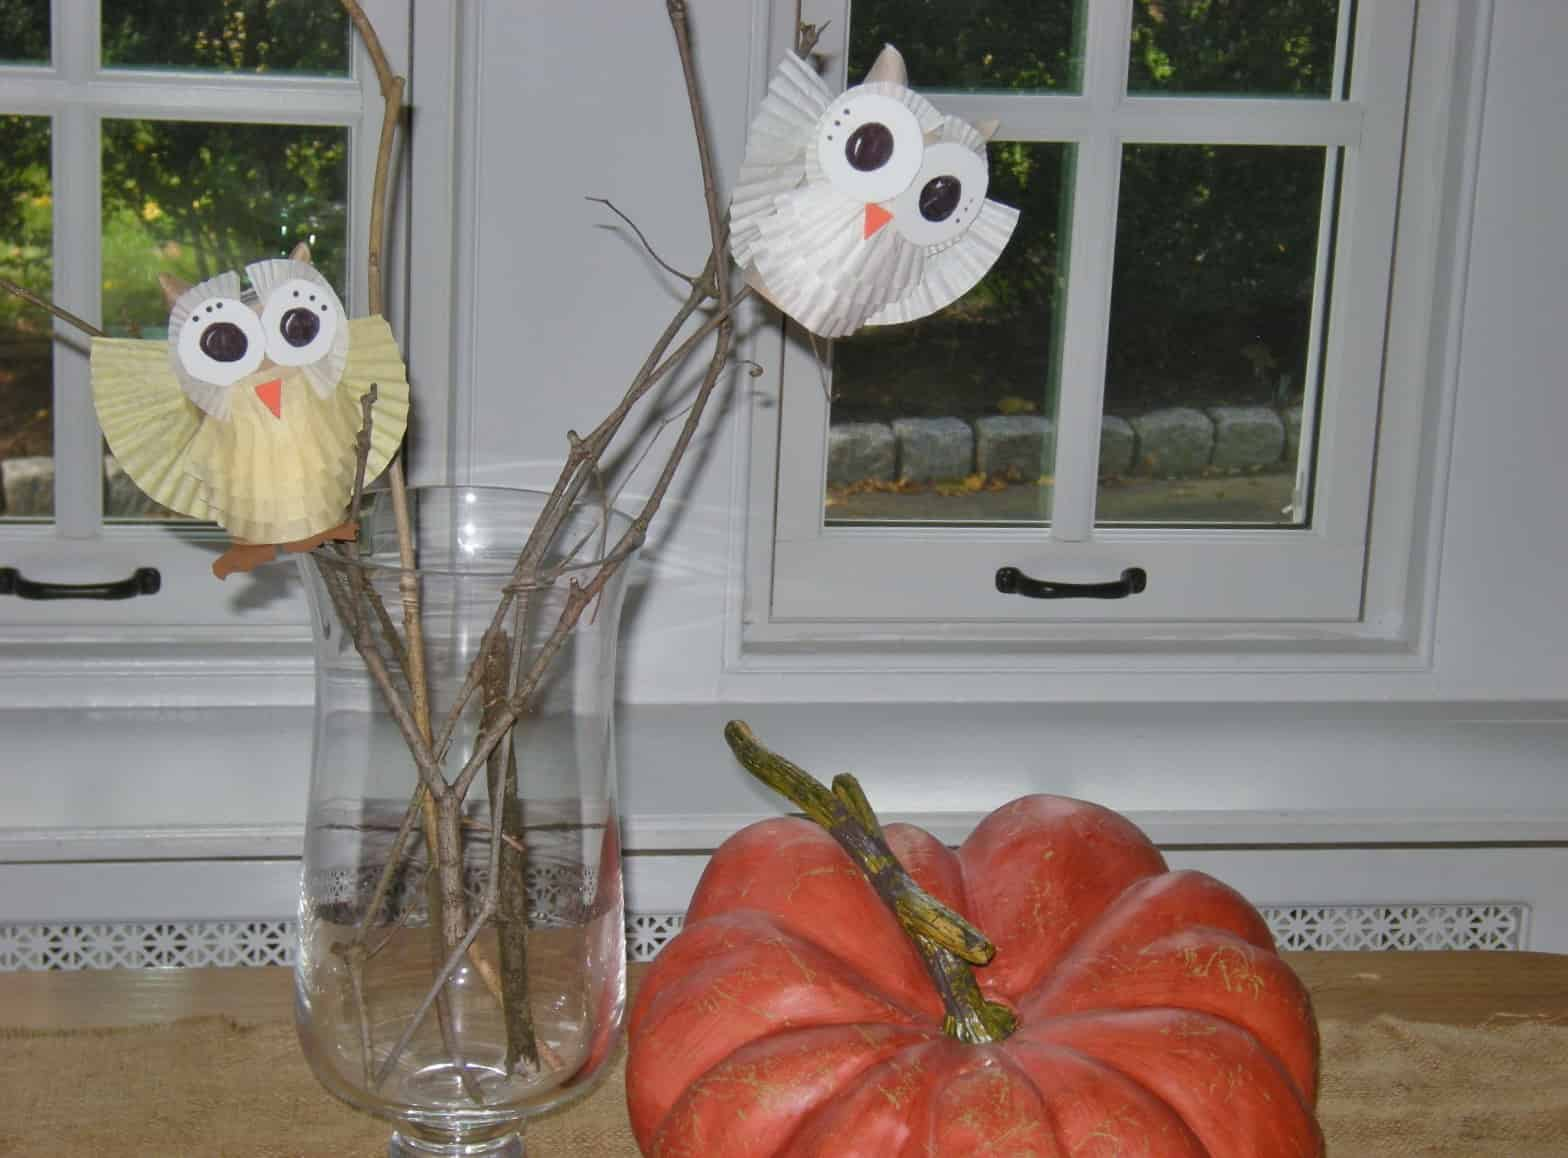 hope this gives you some ideas - Cute Halloween Decoration Ideas